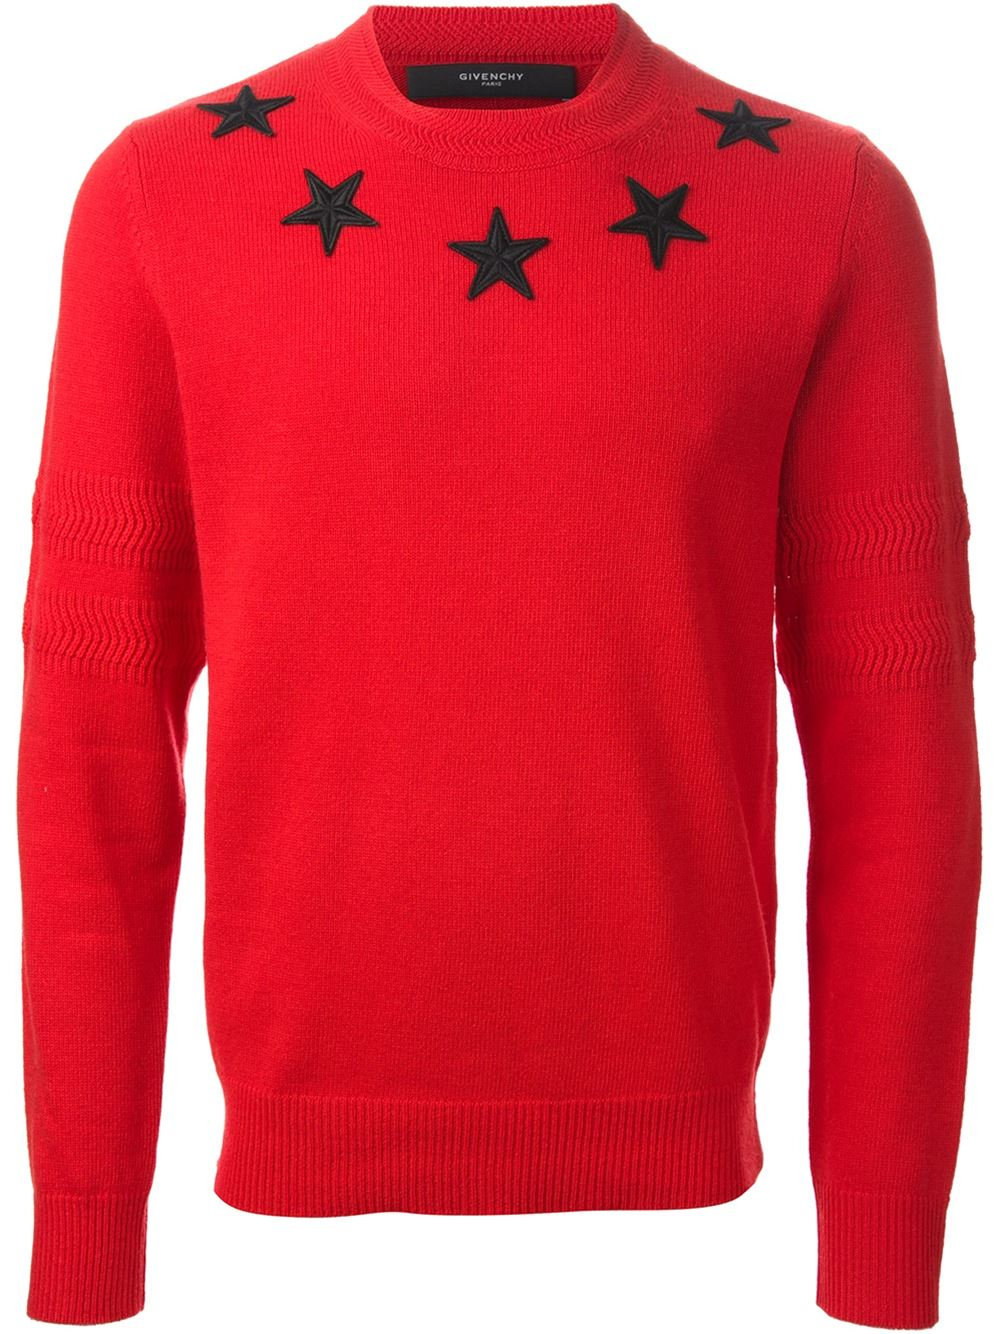 givenchy star sweater in red for men lyst. Black Bedroom Furniture Sets. Home Design Ideas